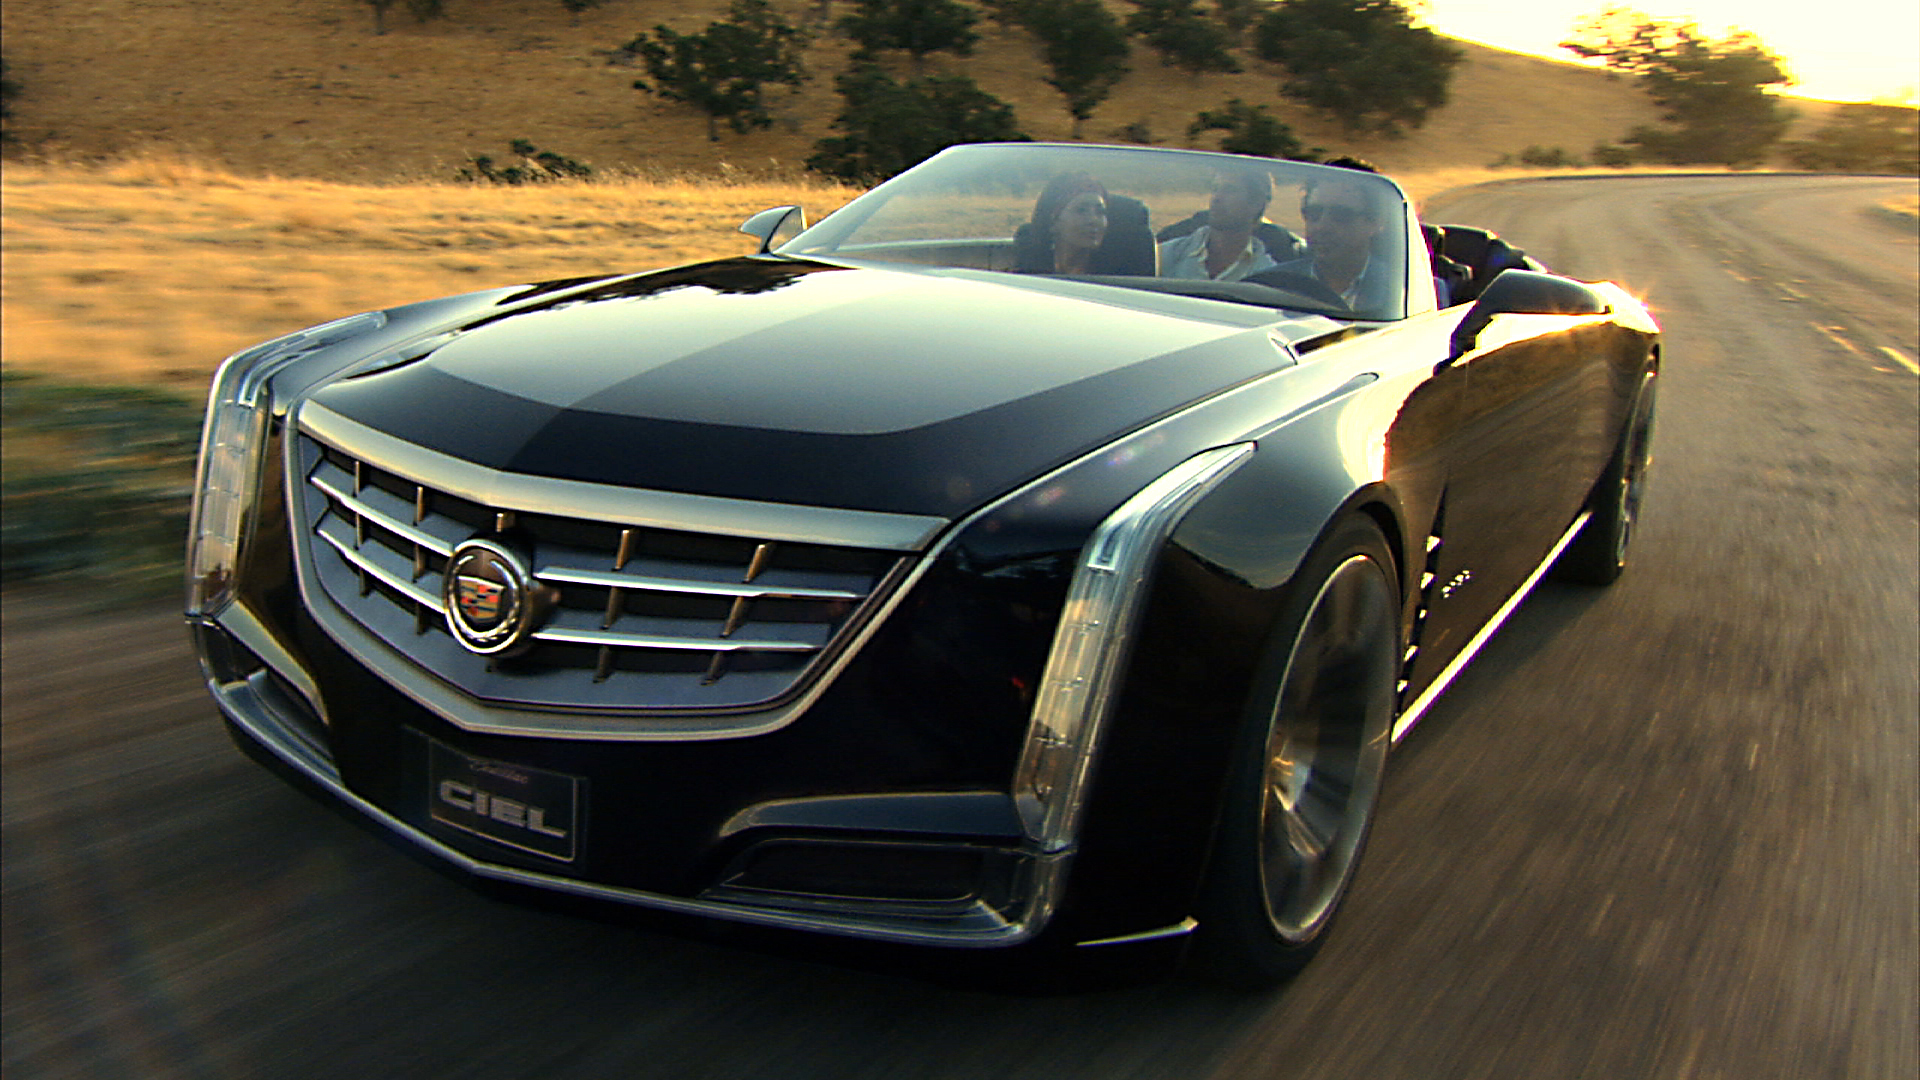 Awesome Cadillac Ciel. * Download The Image Above